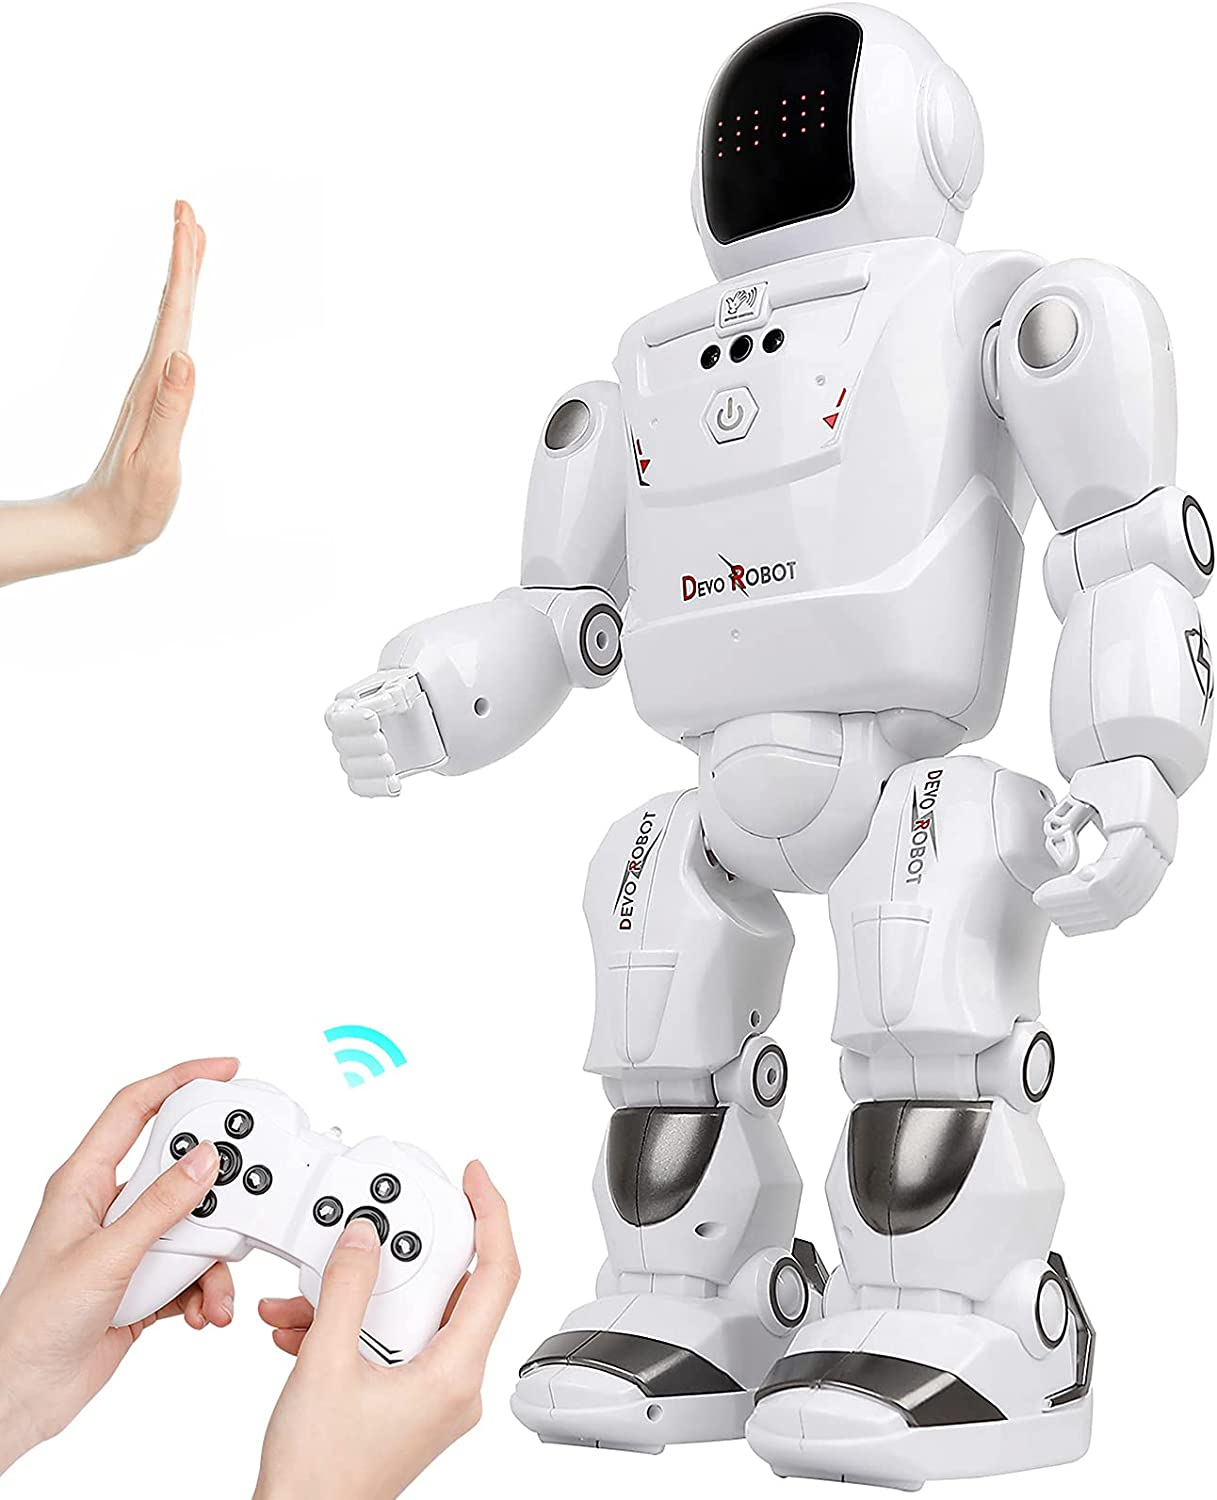 M SANMERSEN RC Robot Toys Interacti Programmable 67% OFF of fixed price Large Kids safety for